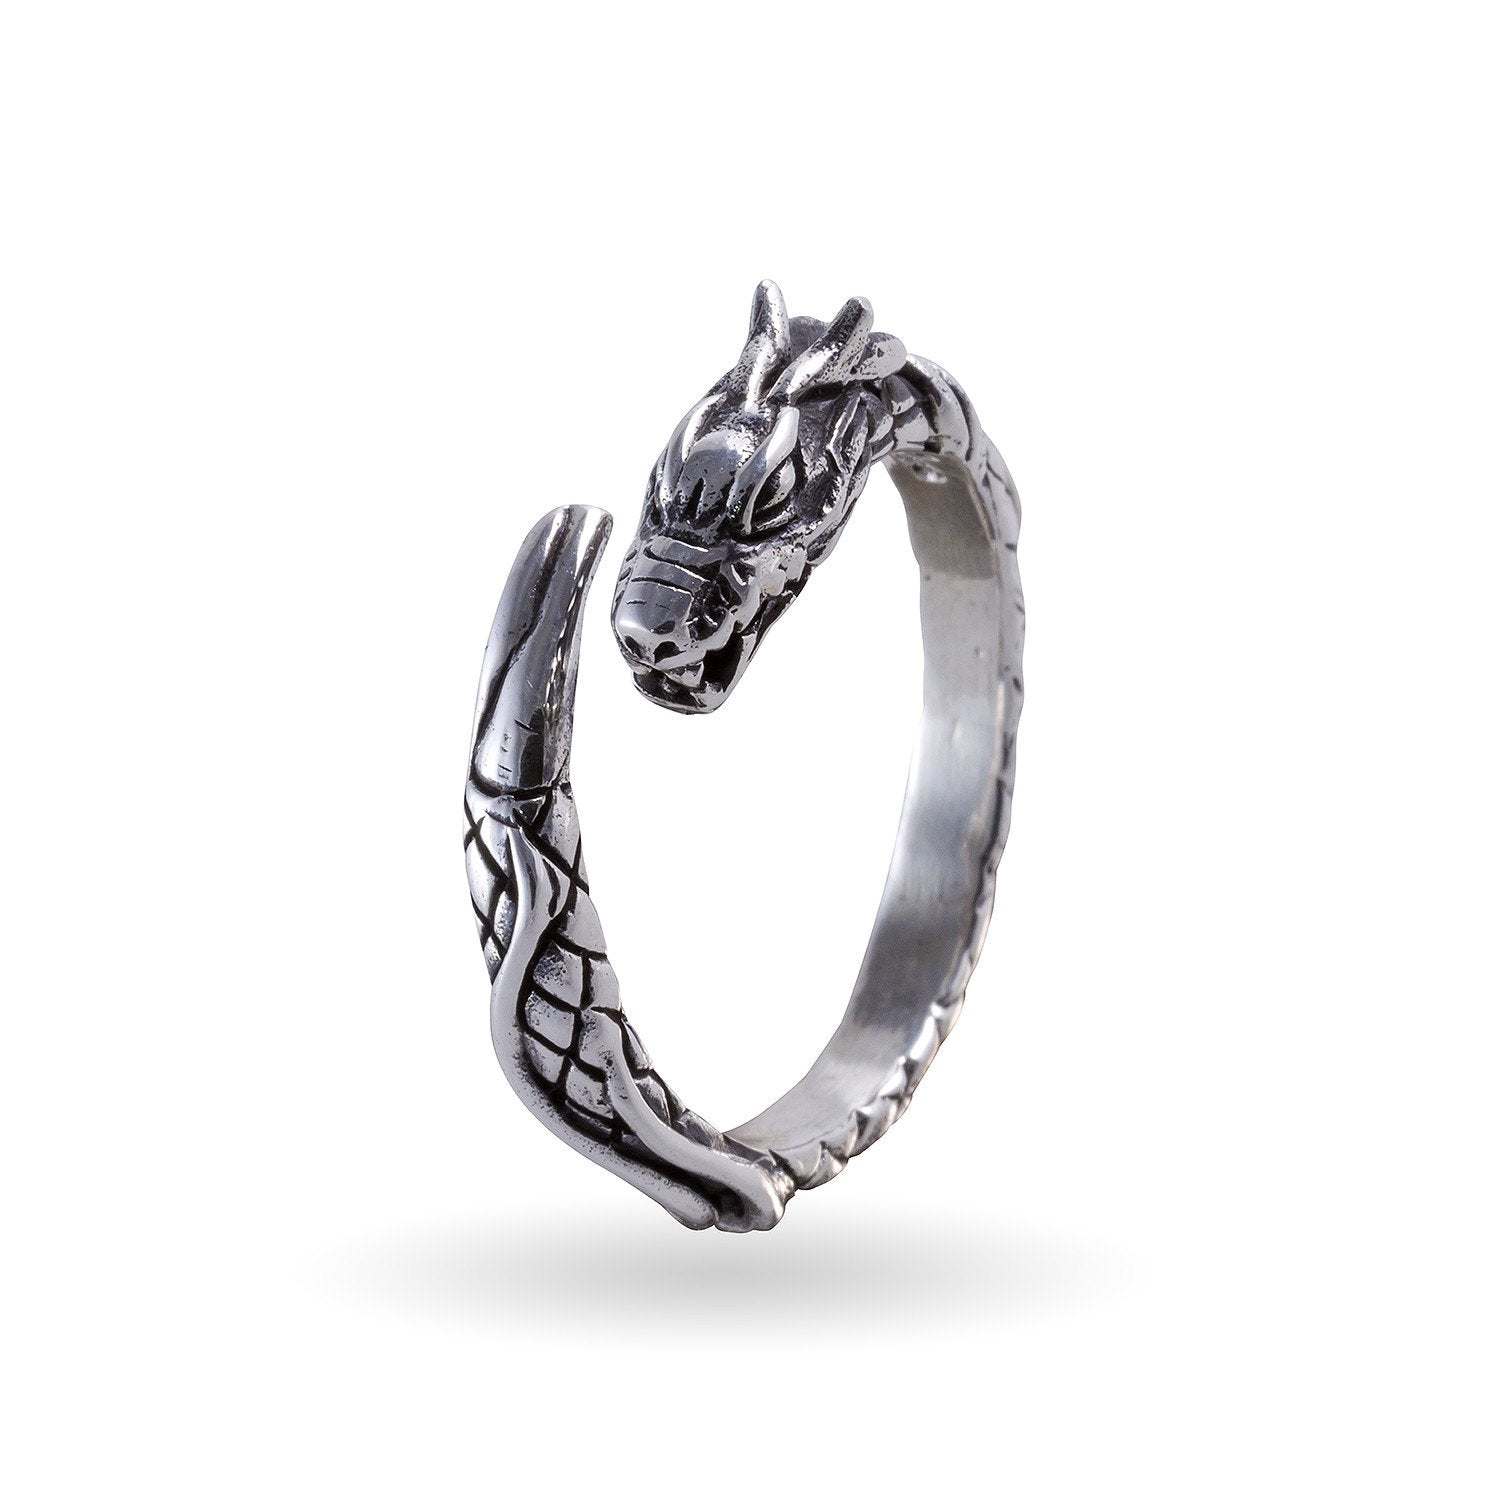 925 Sterling Silver Viking Jormungand Ring